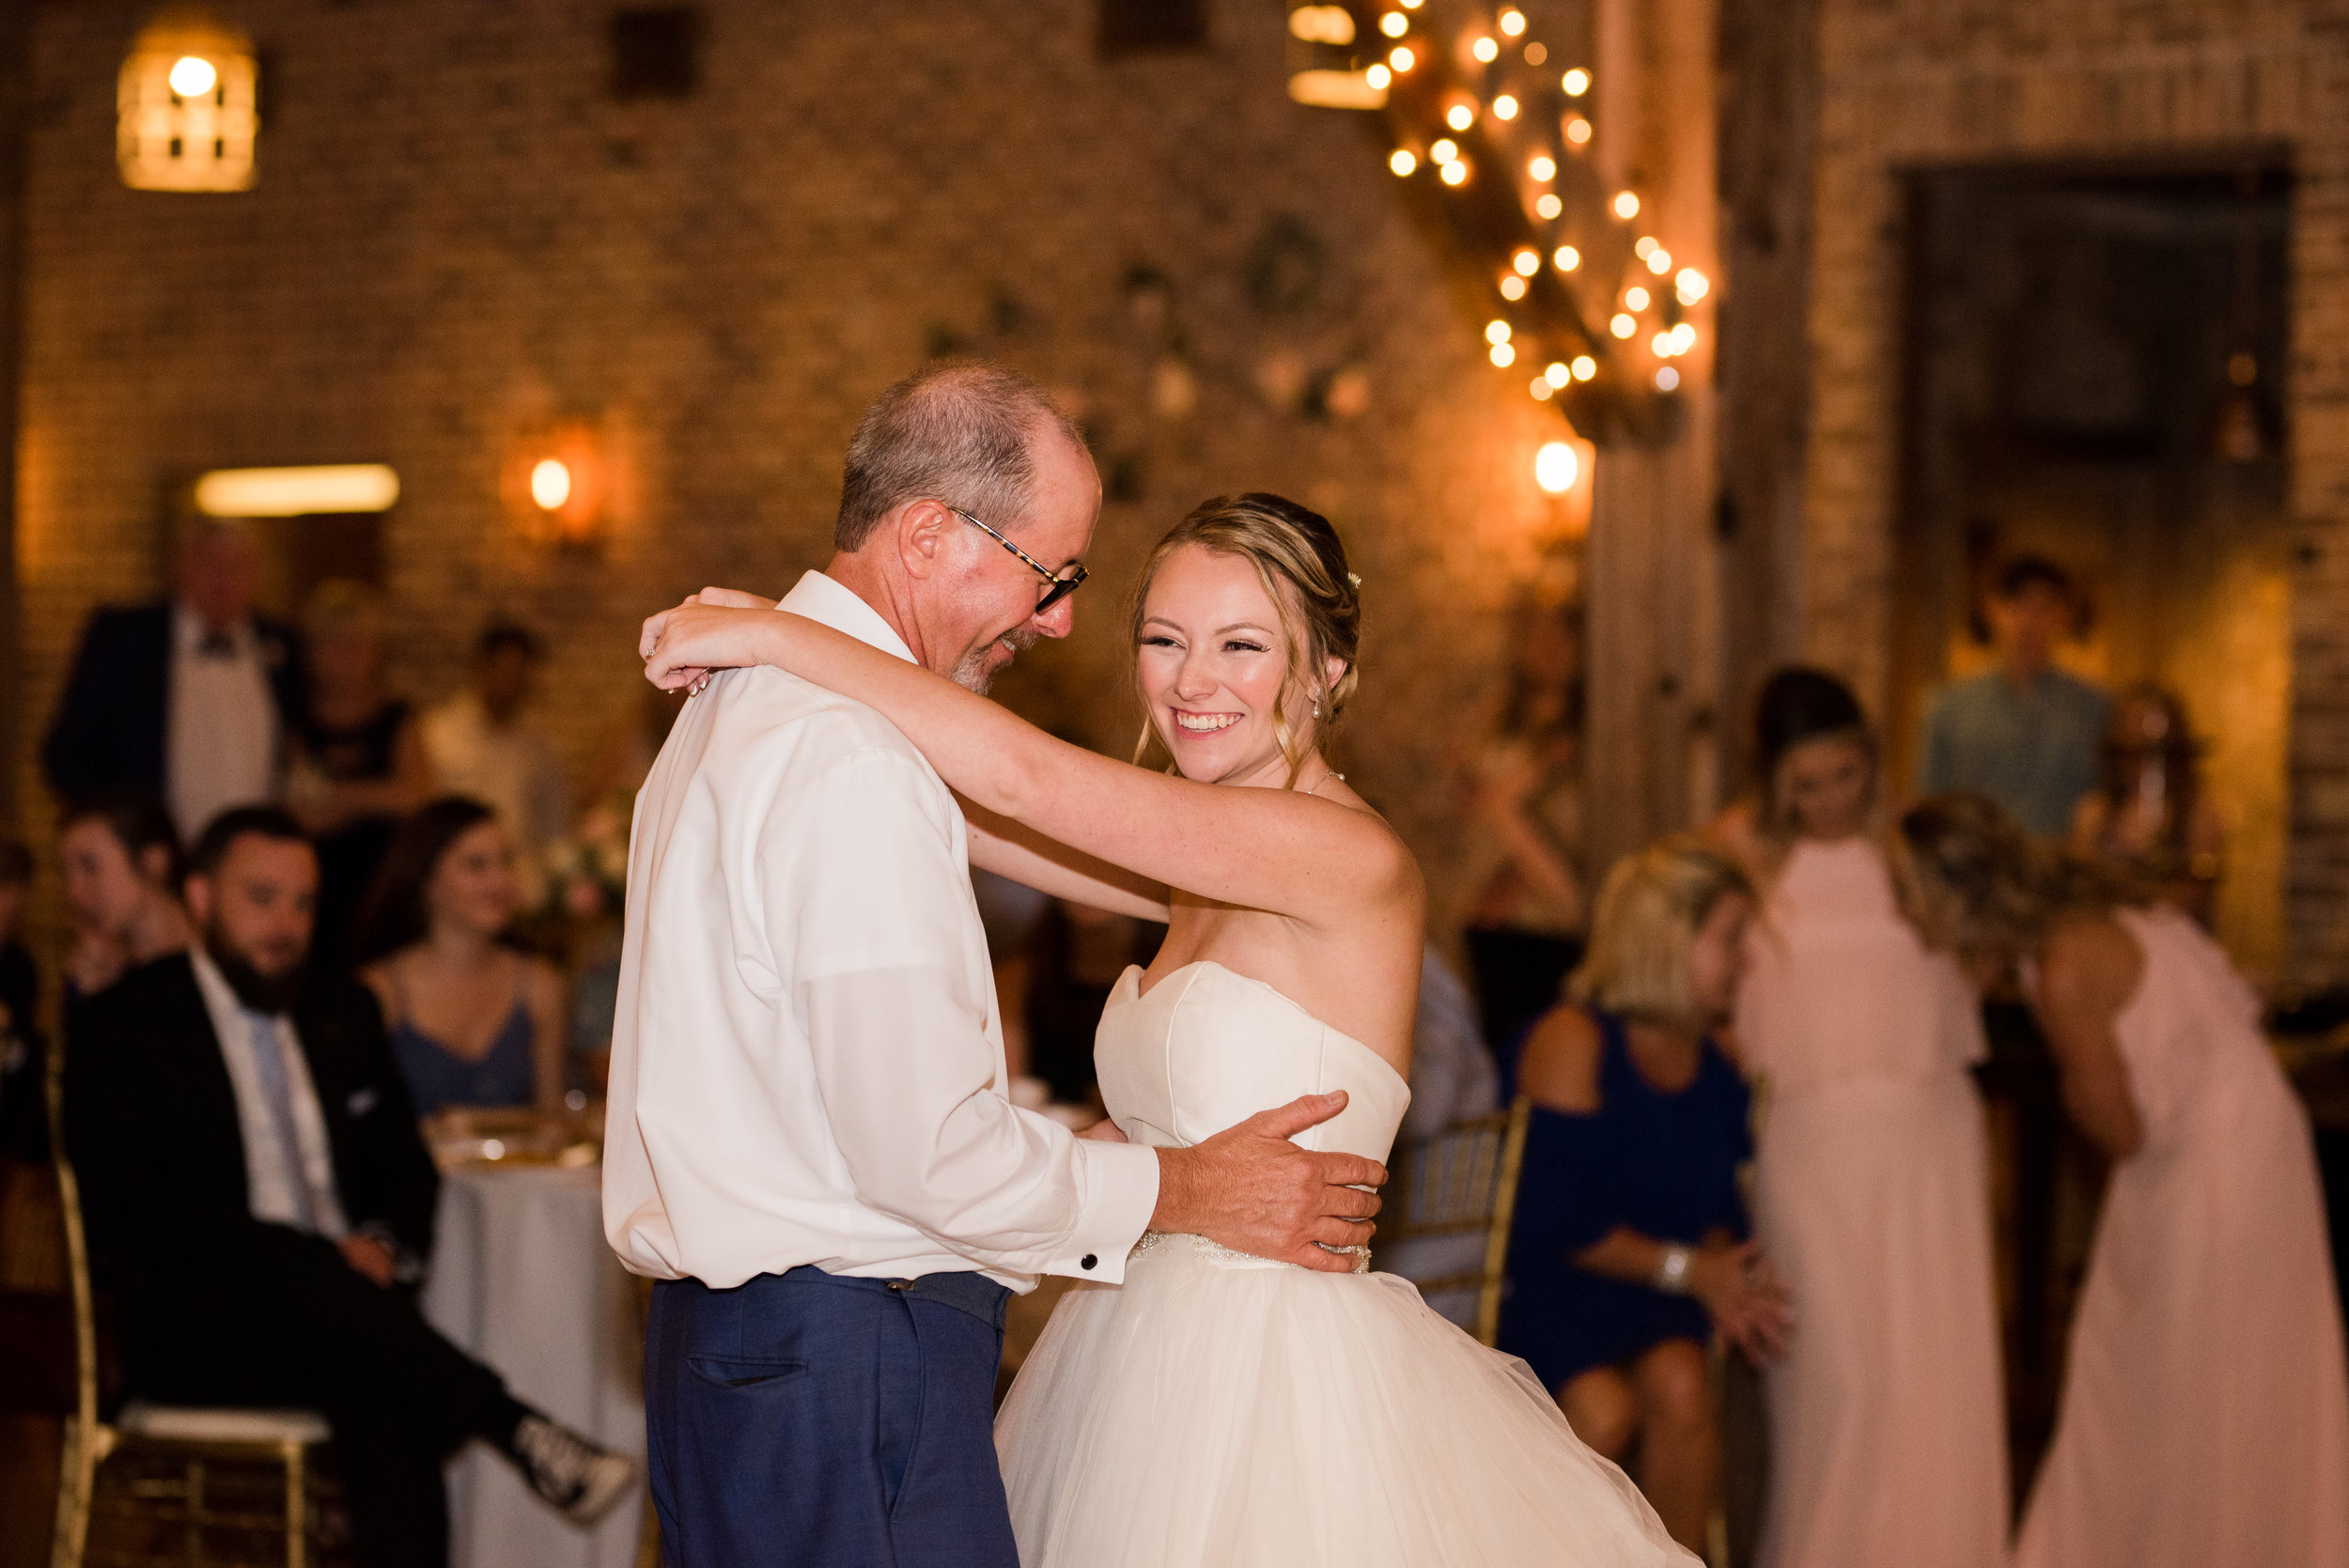 The Barn at Bridlewood wedding in Hattiesburg, Mississippi (MS) in June | Father Daughter Wedding Dance at the Reception